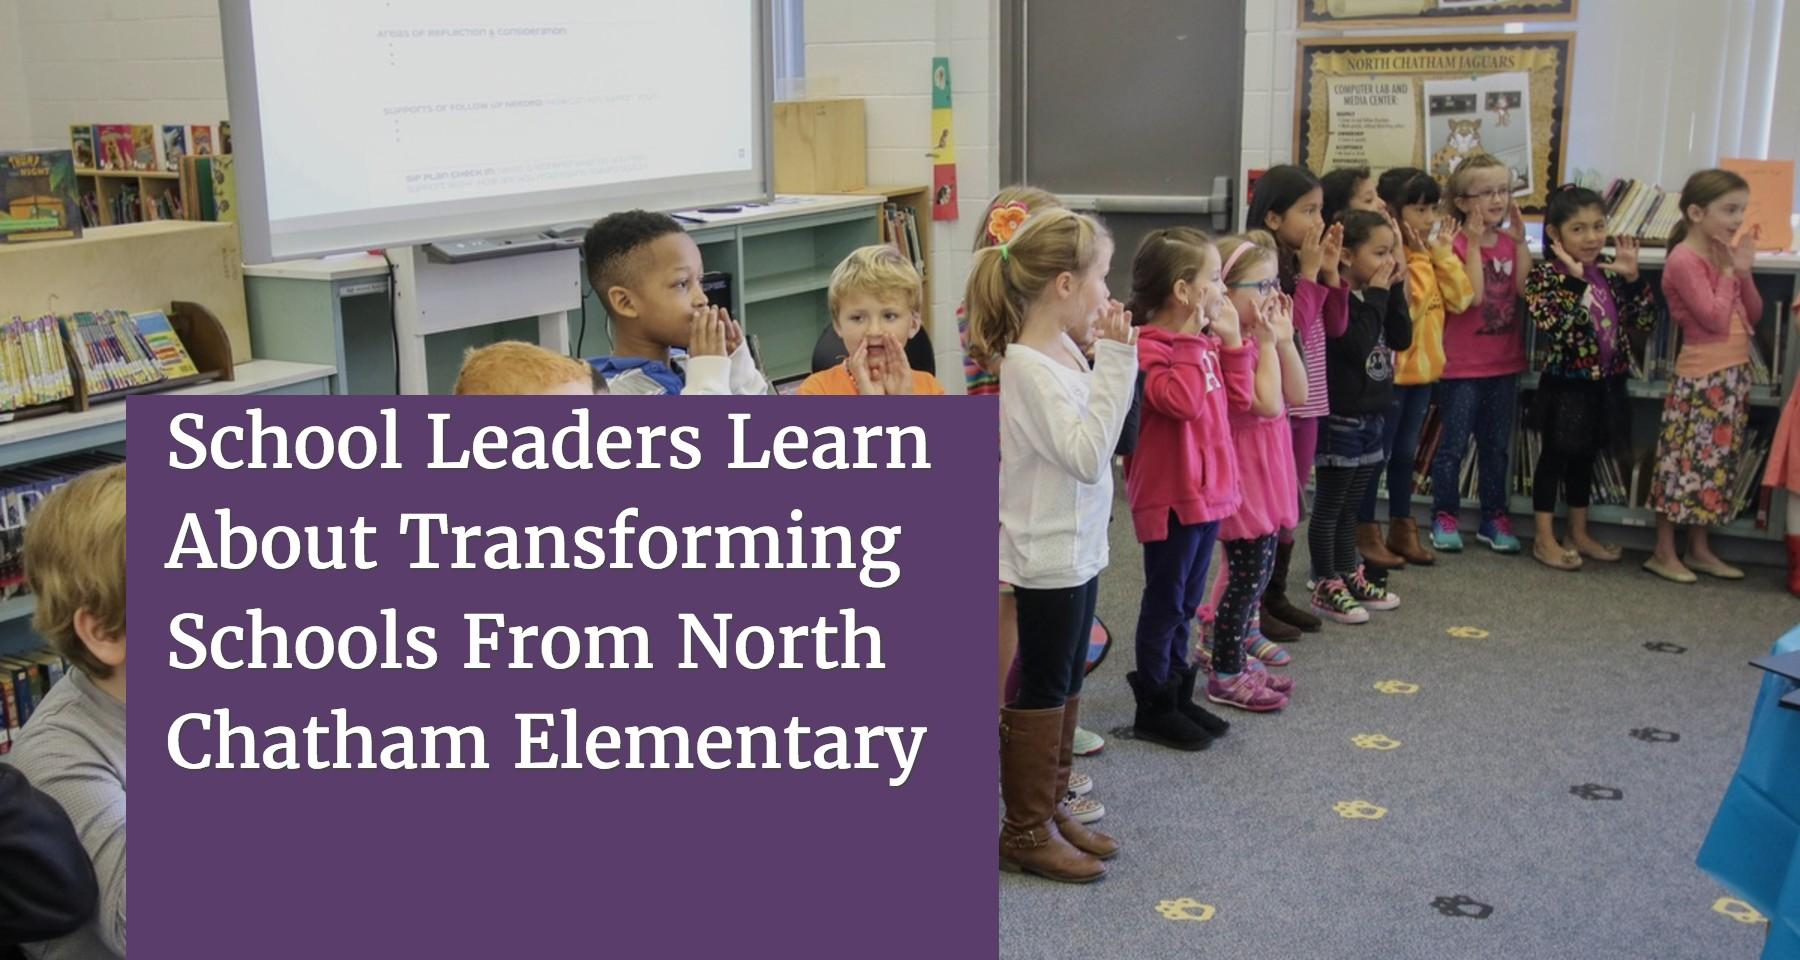 School Transformation Recognized at North Chatham Elementary